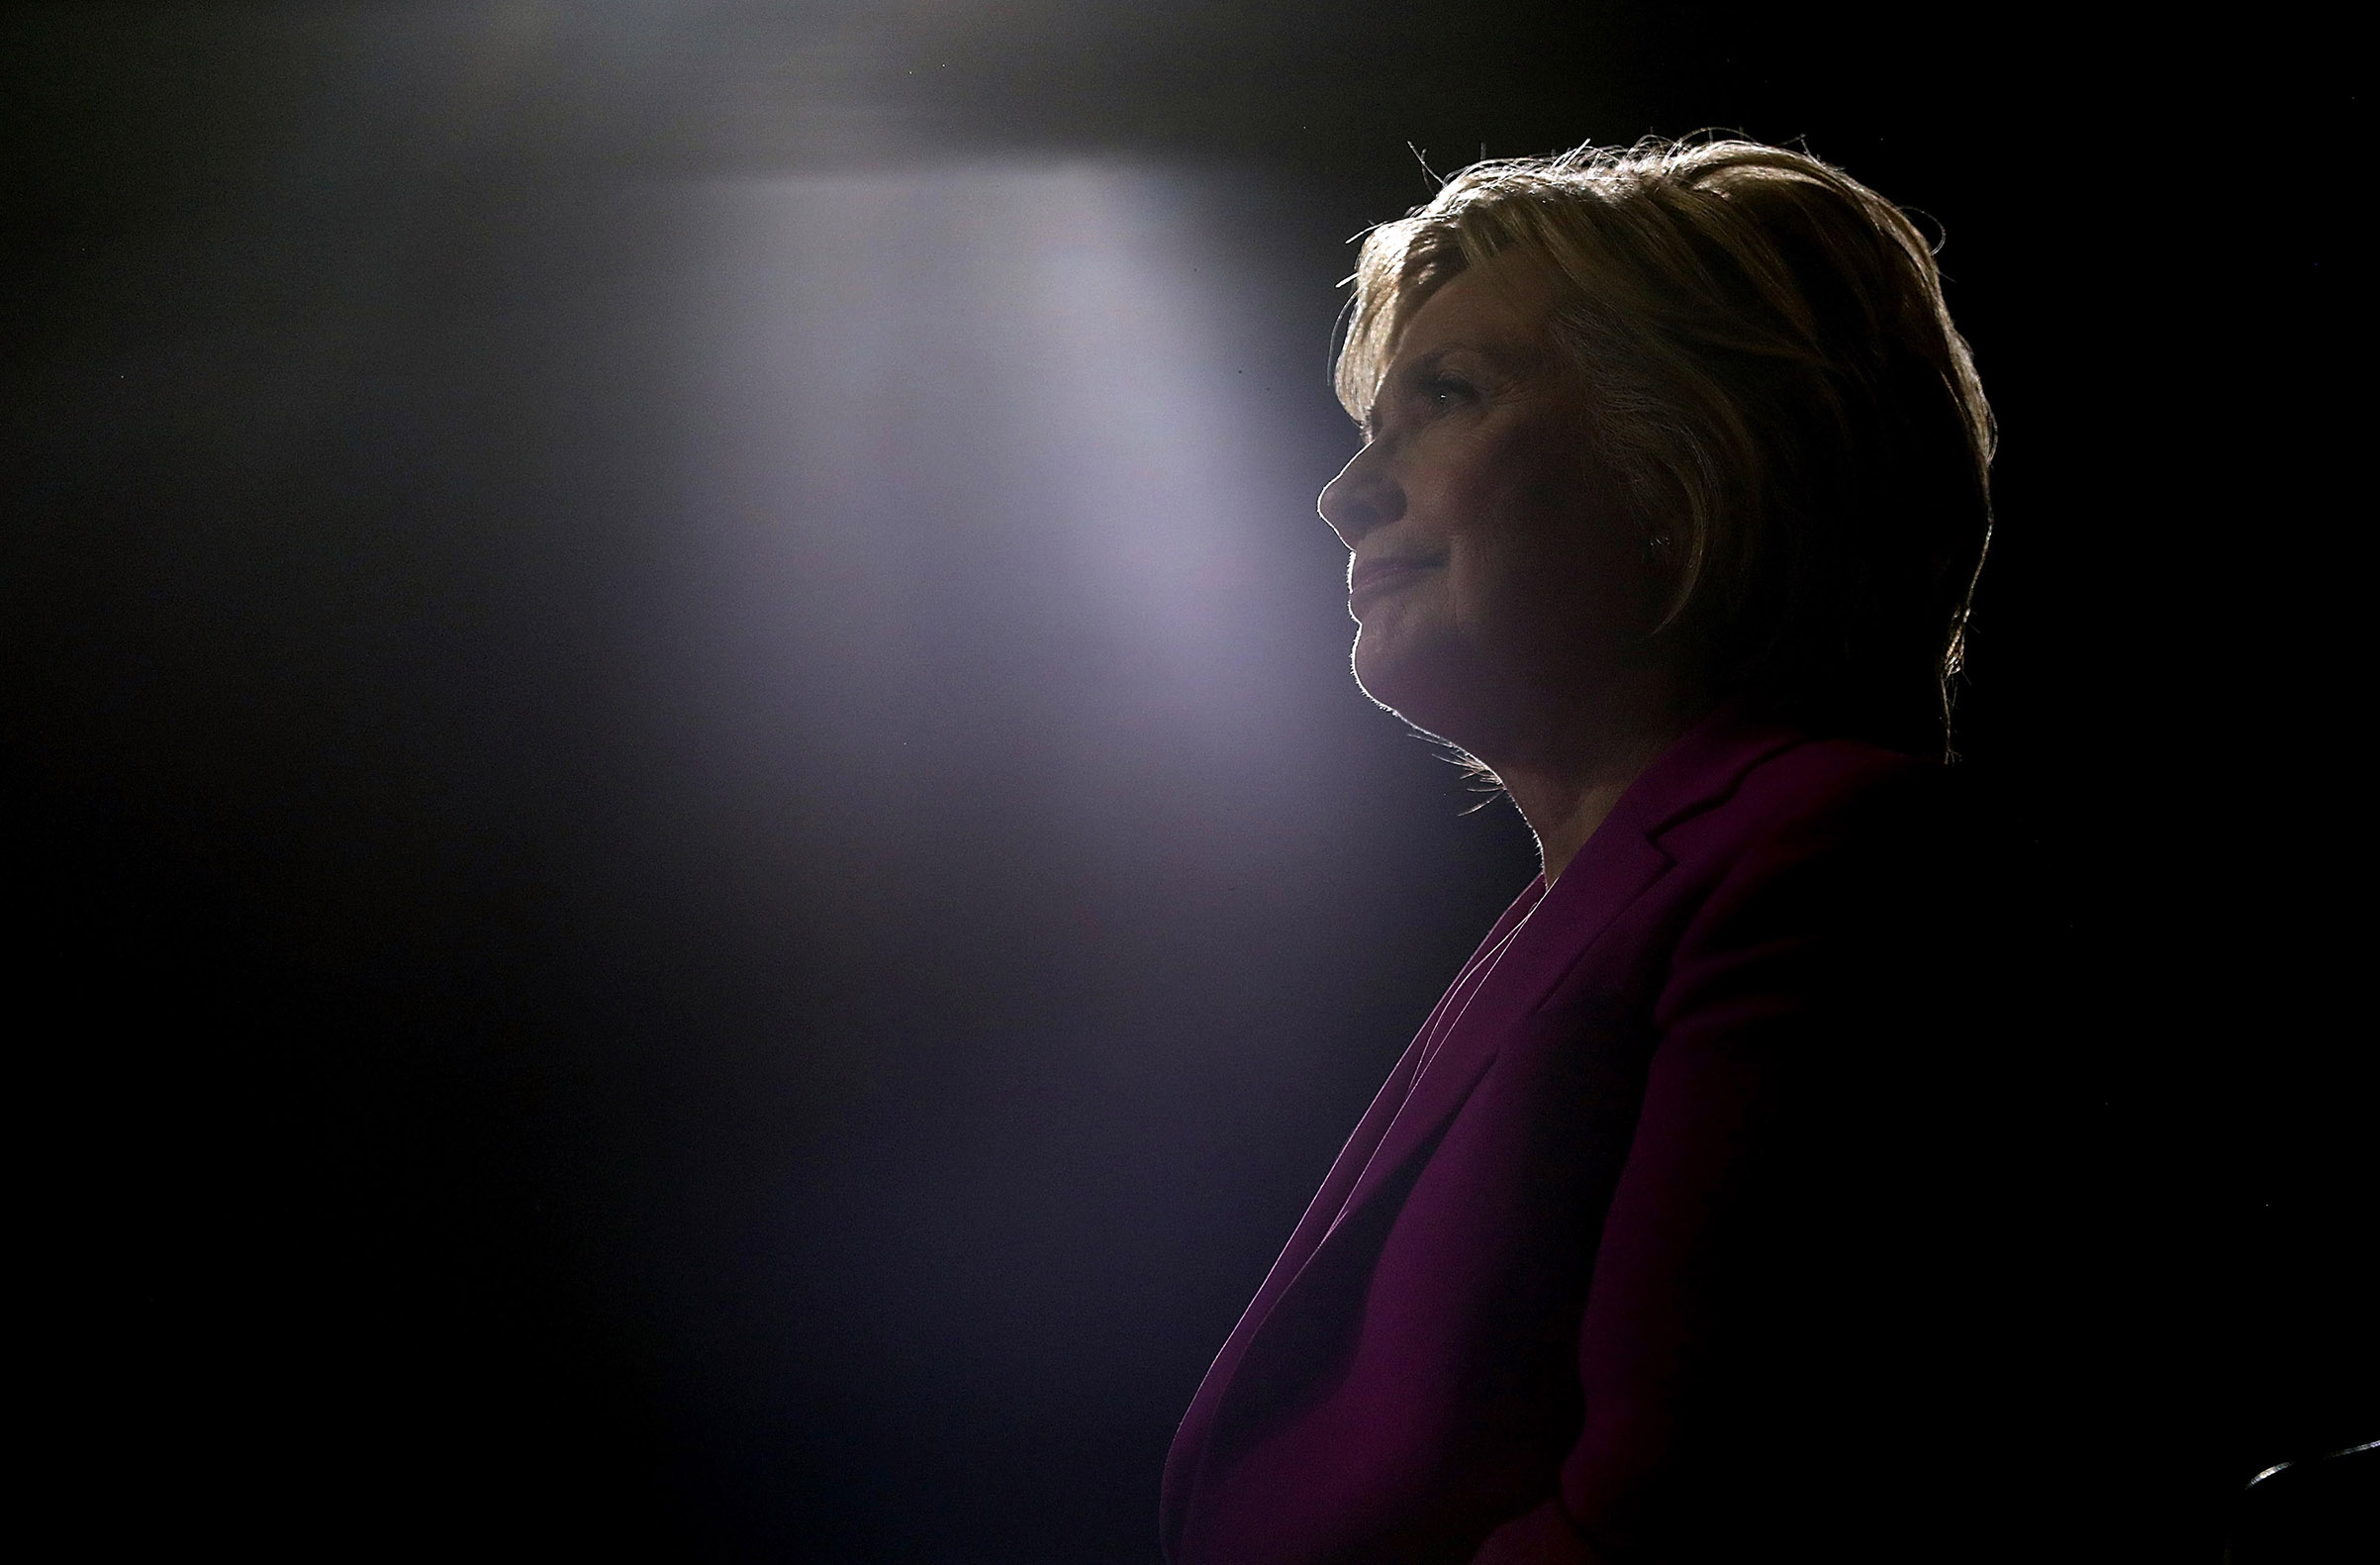 Democratic presidential candidate State Hillary Clinton looks on as president Barack Obama speaks during a campaign rally in Charlotte, N.C., on July 5, 2016.